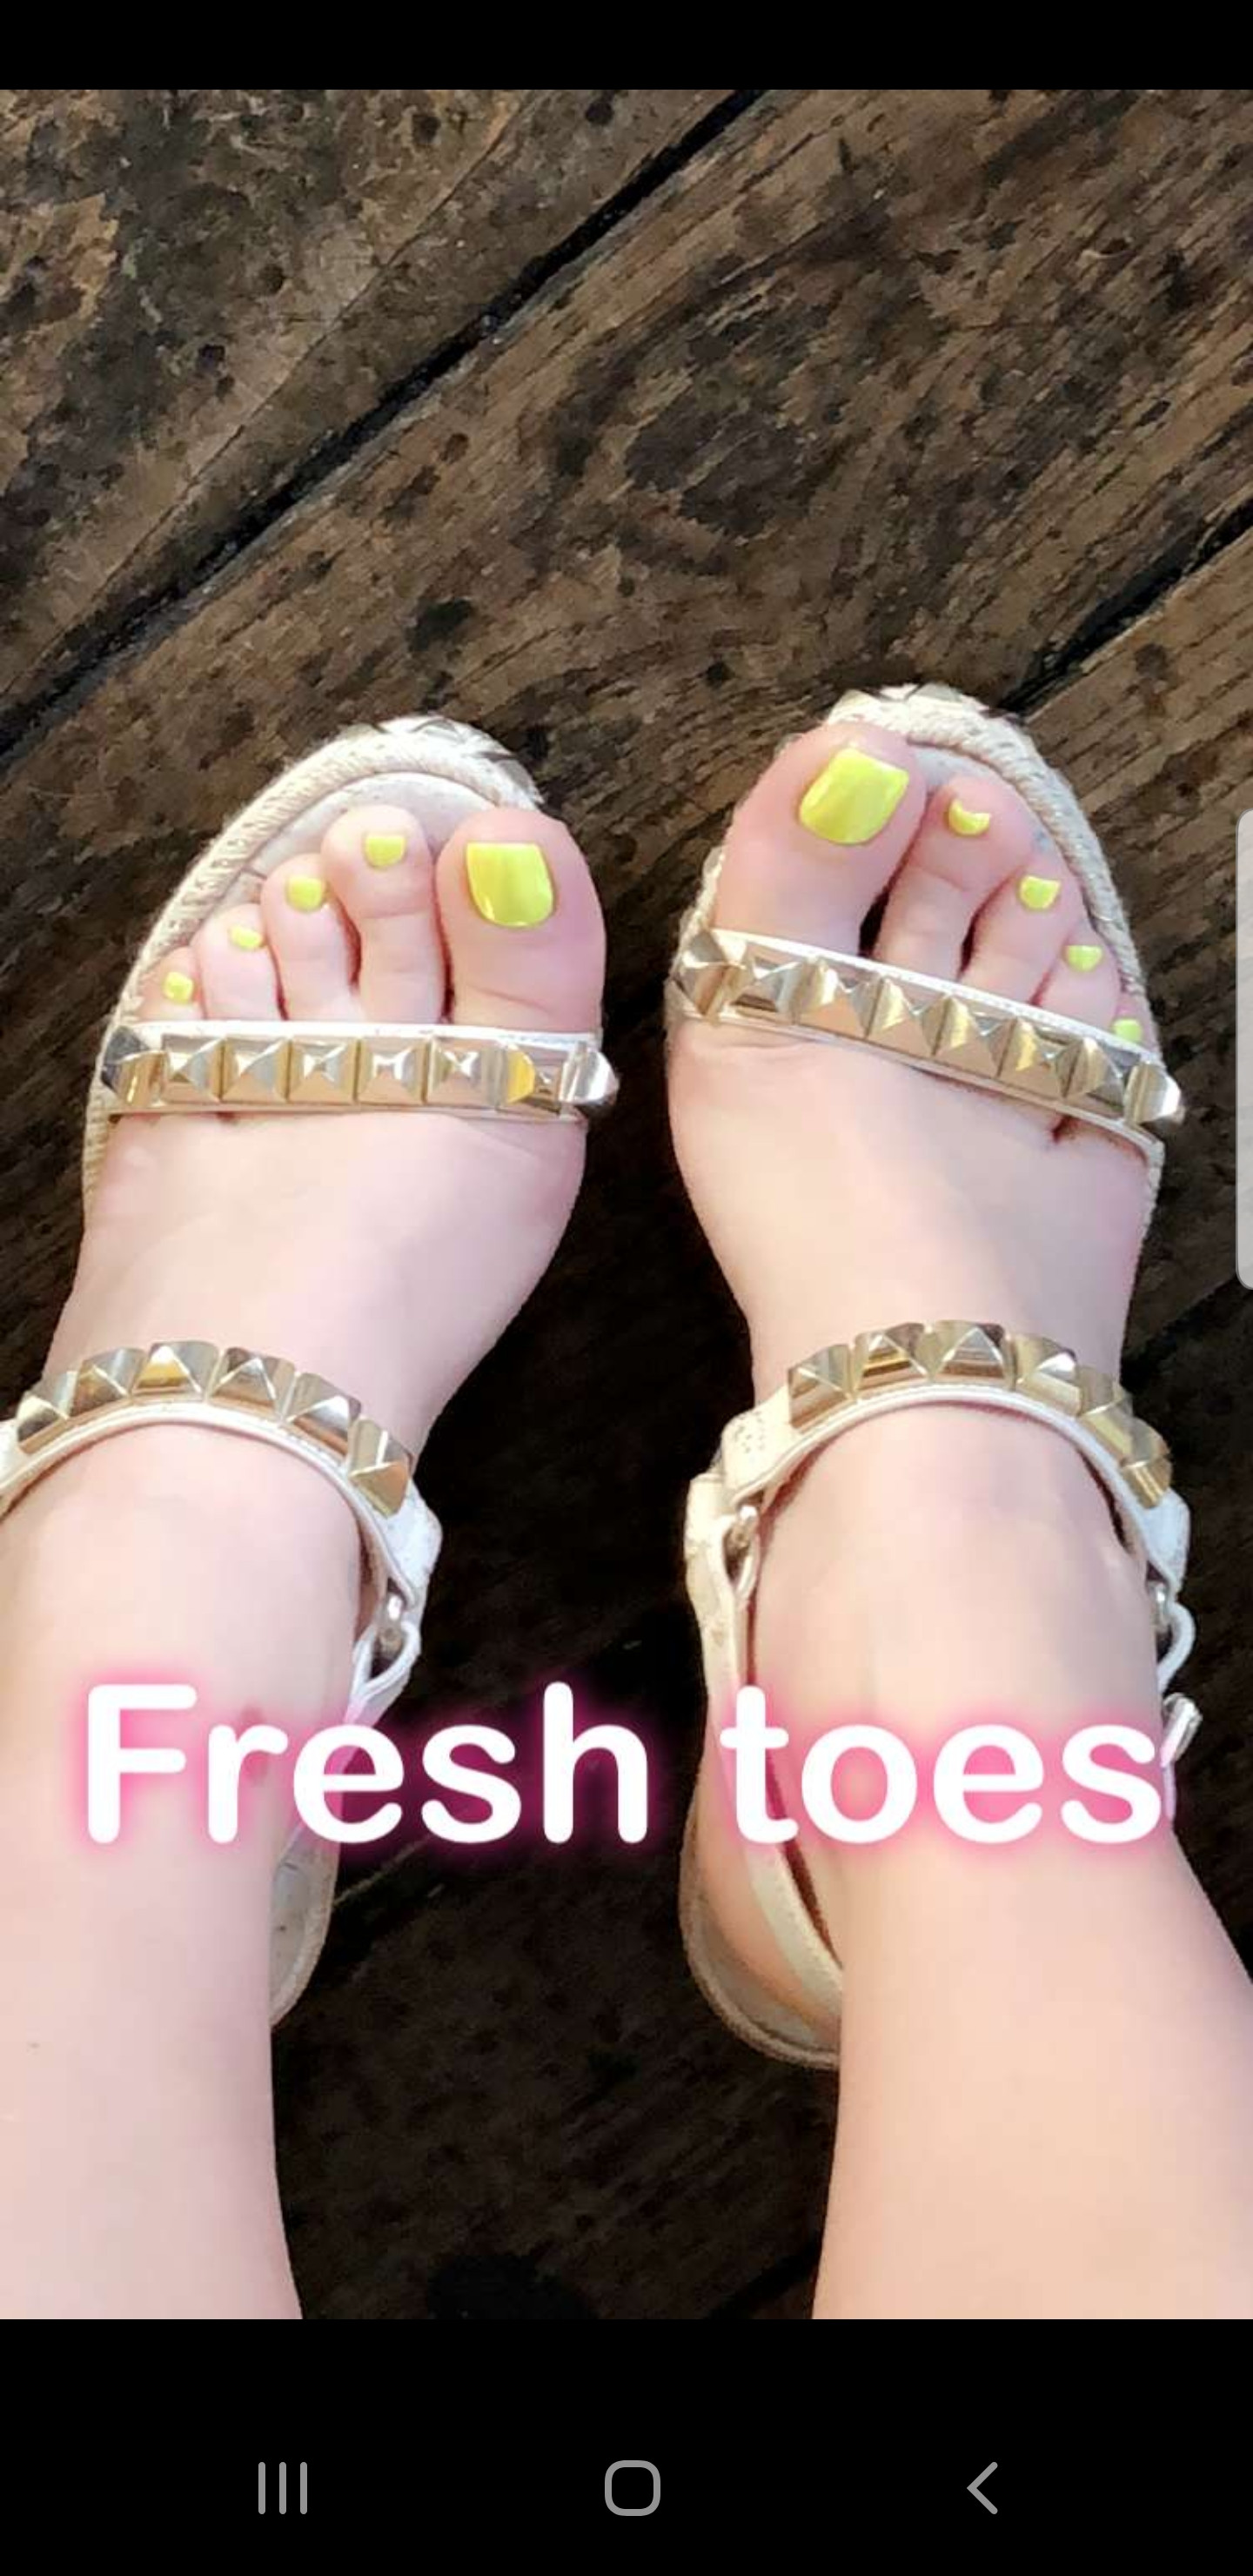 Chanel West Coast Toes photo 2